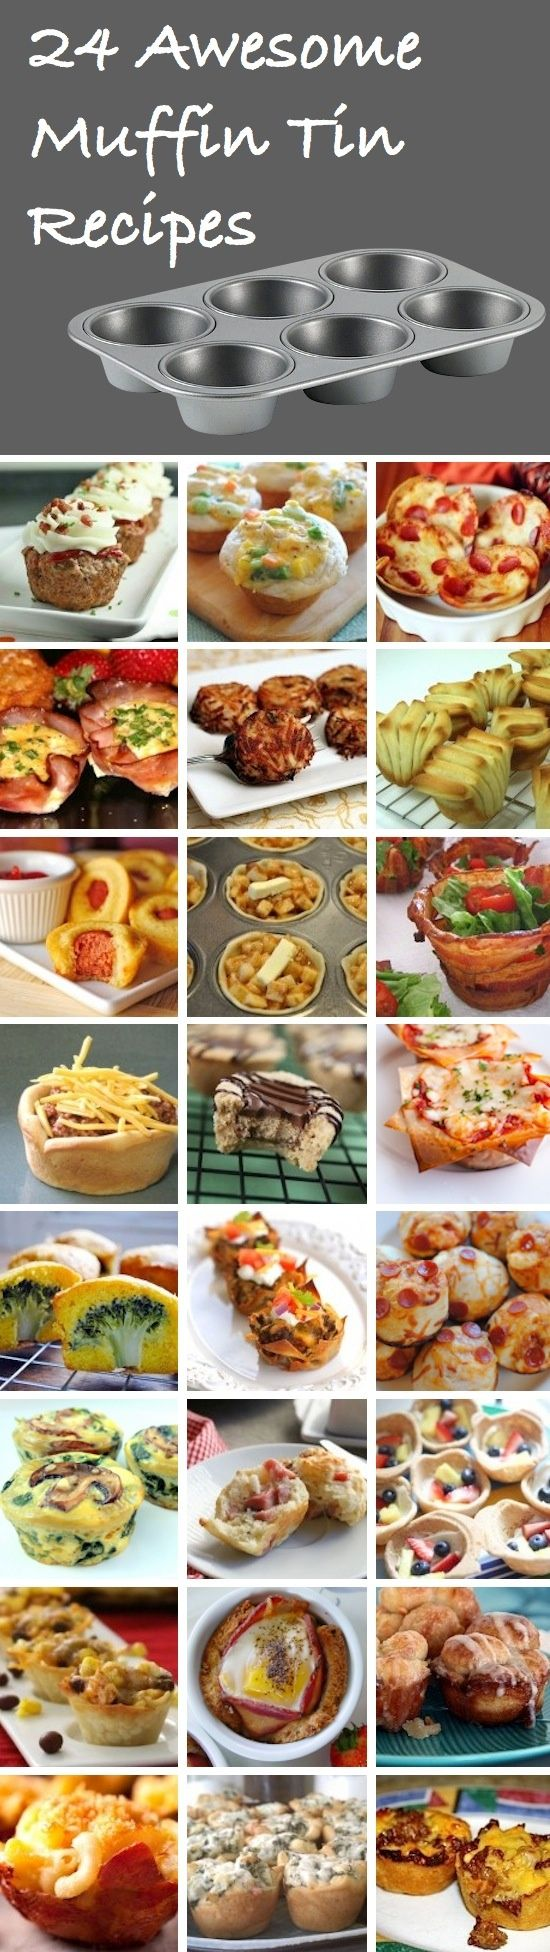 24 Awesome Muffin Tin Recipes #breakfast #recipe #healthy #recipes #brunch #easy